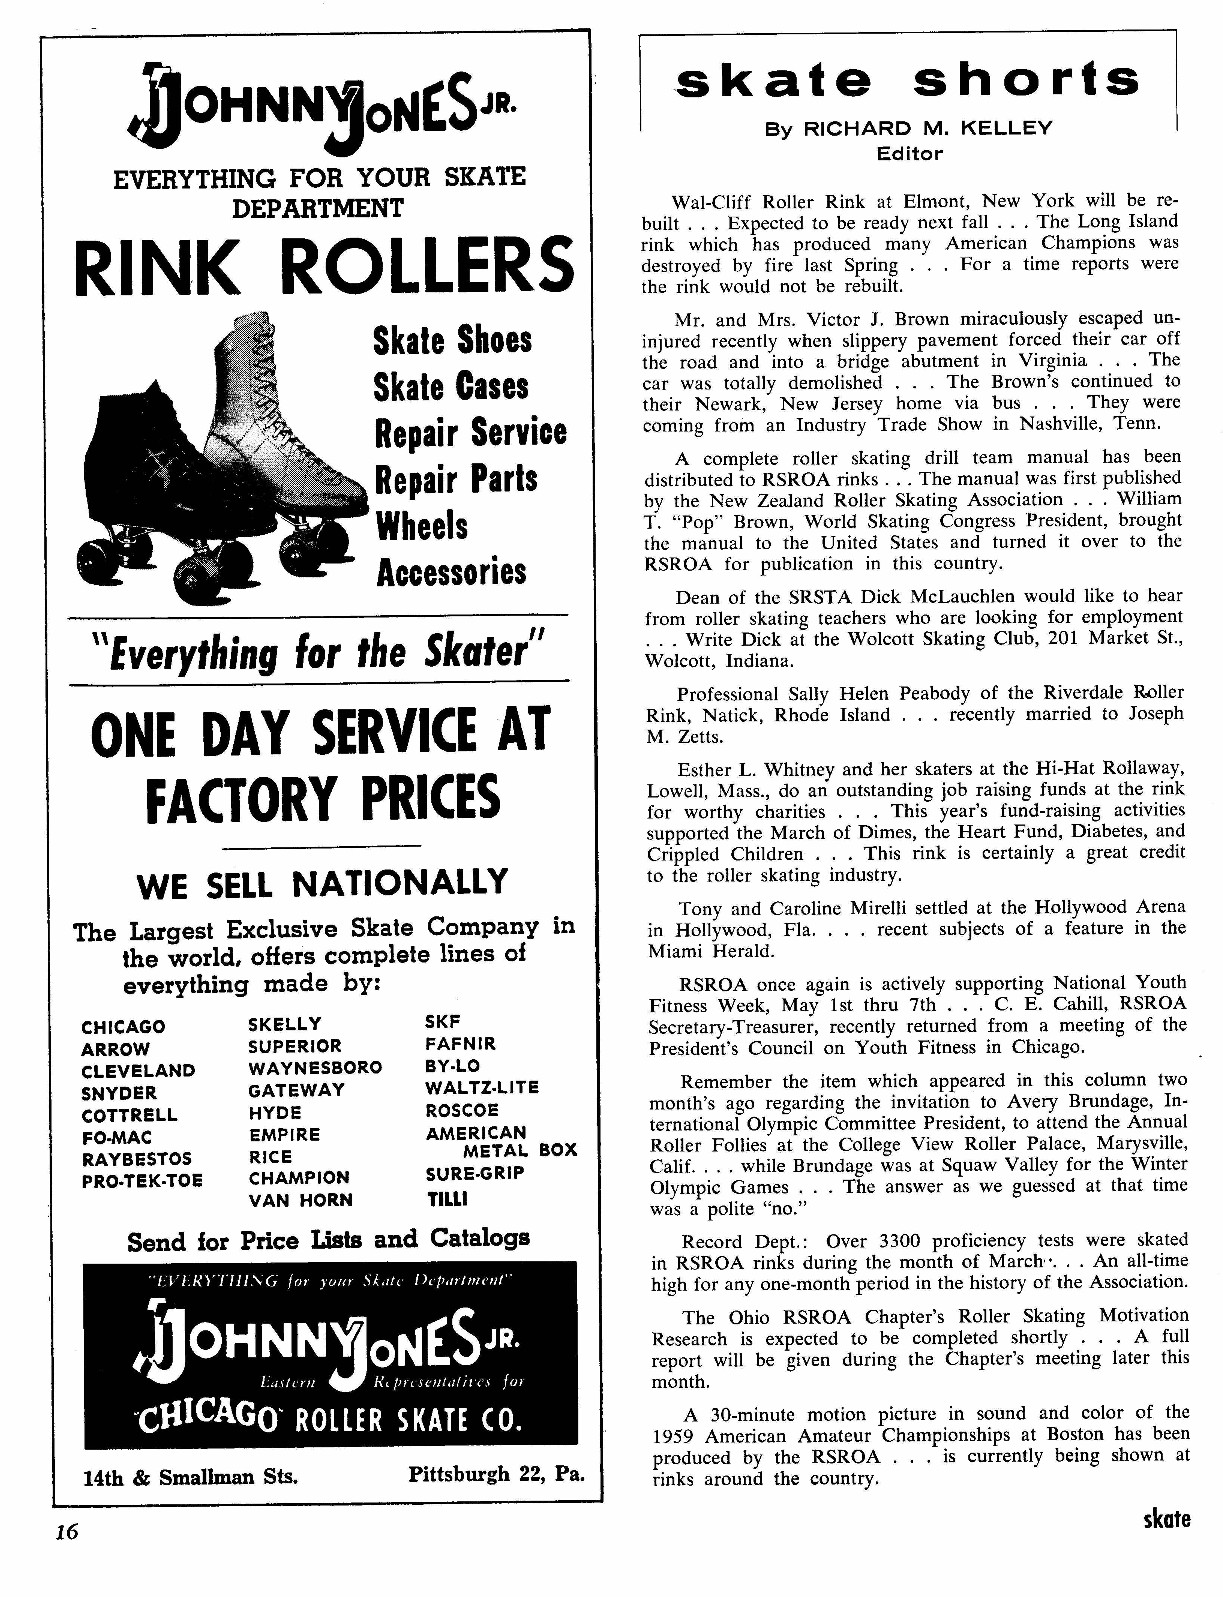 Roller skating rink queen anne - Skate Shorts Page S 16 Wal Cliff Roller Rink